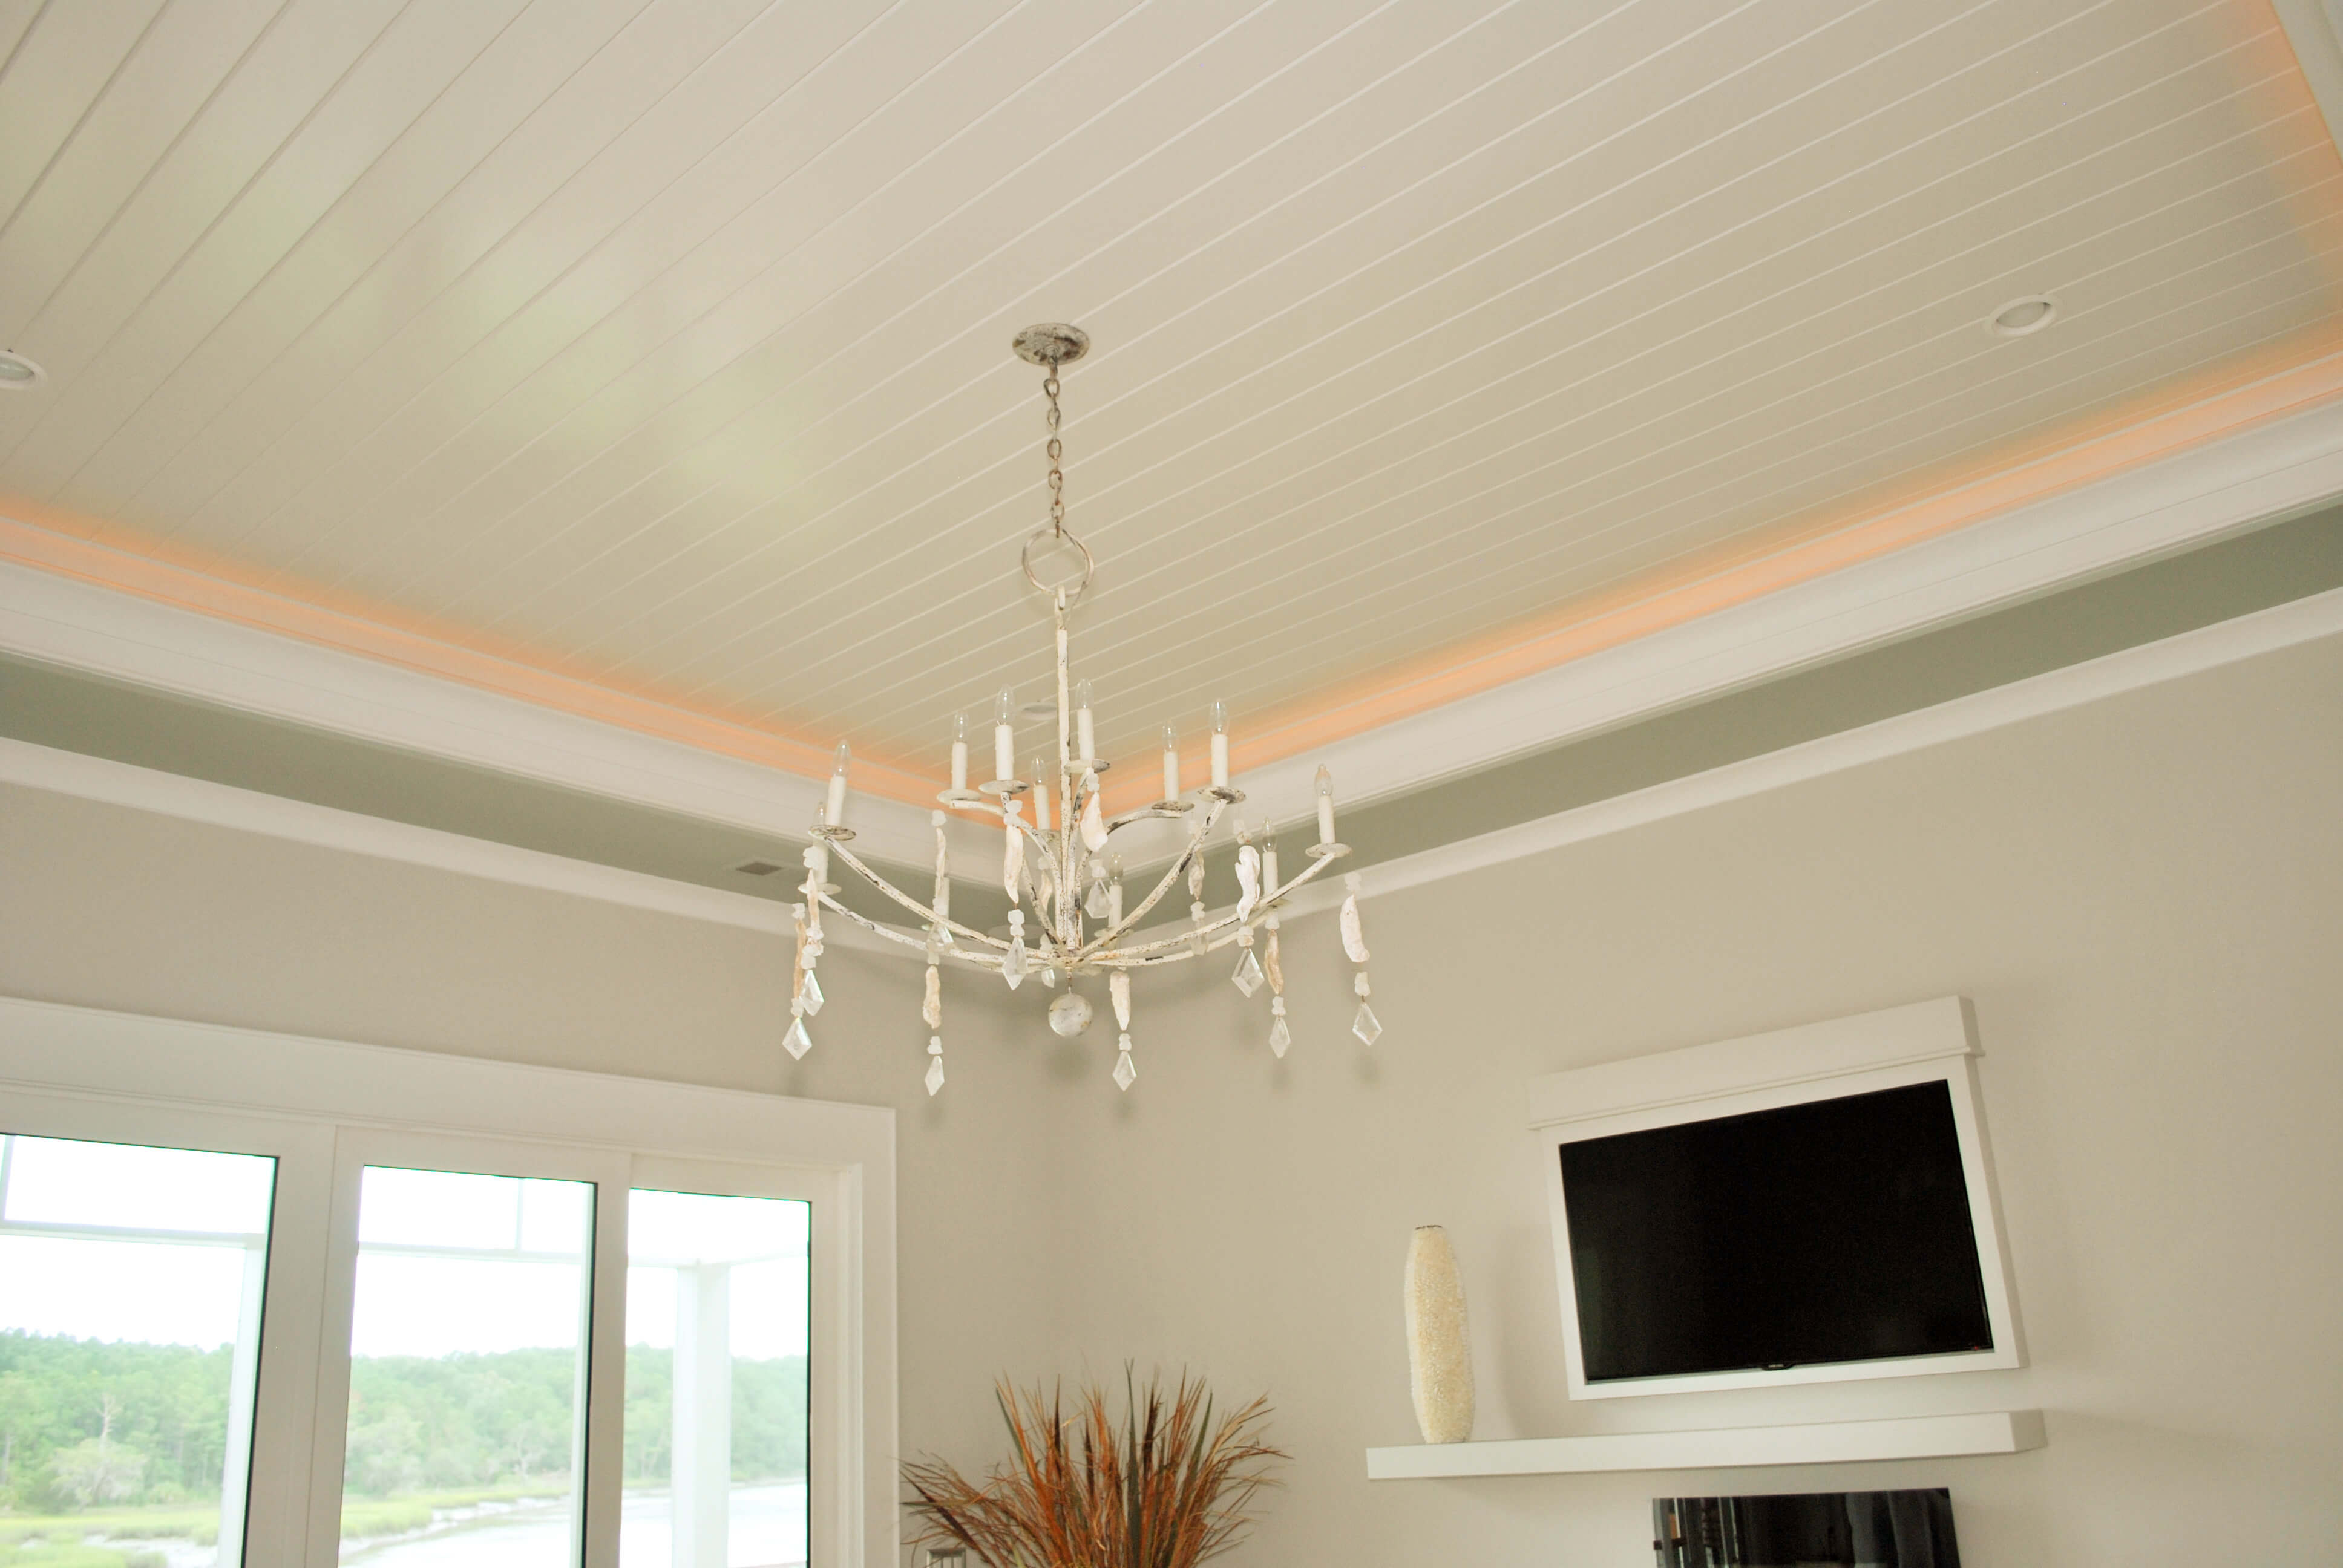 Ceiling in bedroom features wraparound embedded lighting, while wall-mounted TV can be seen beyond minimalist chandelier.